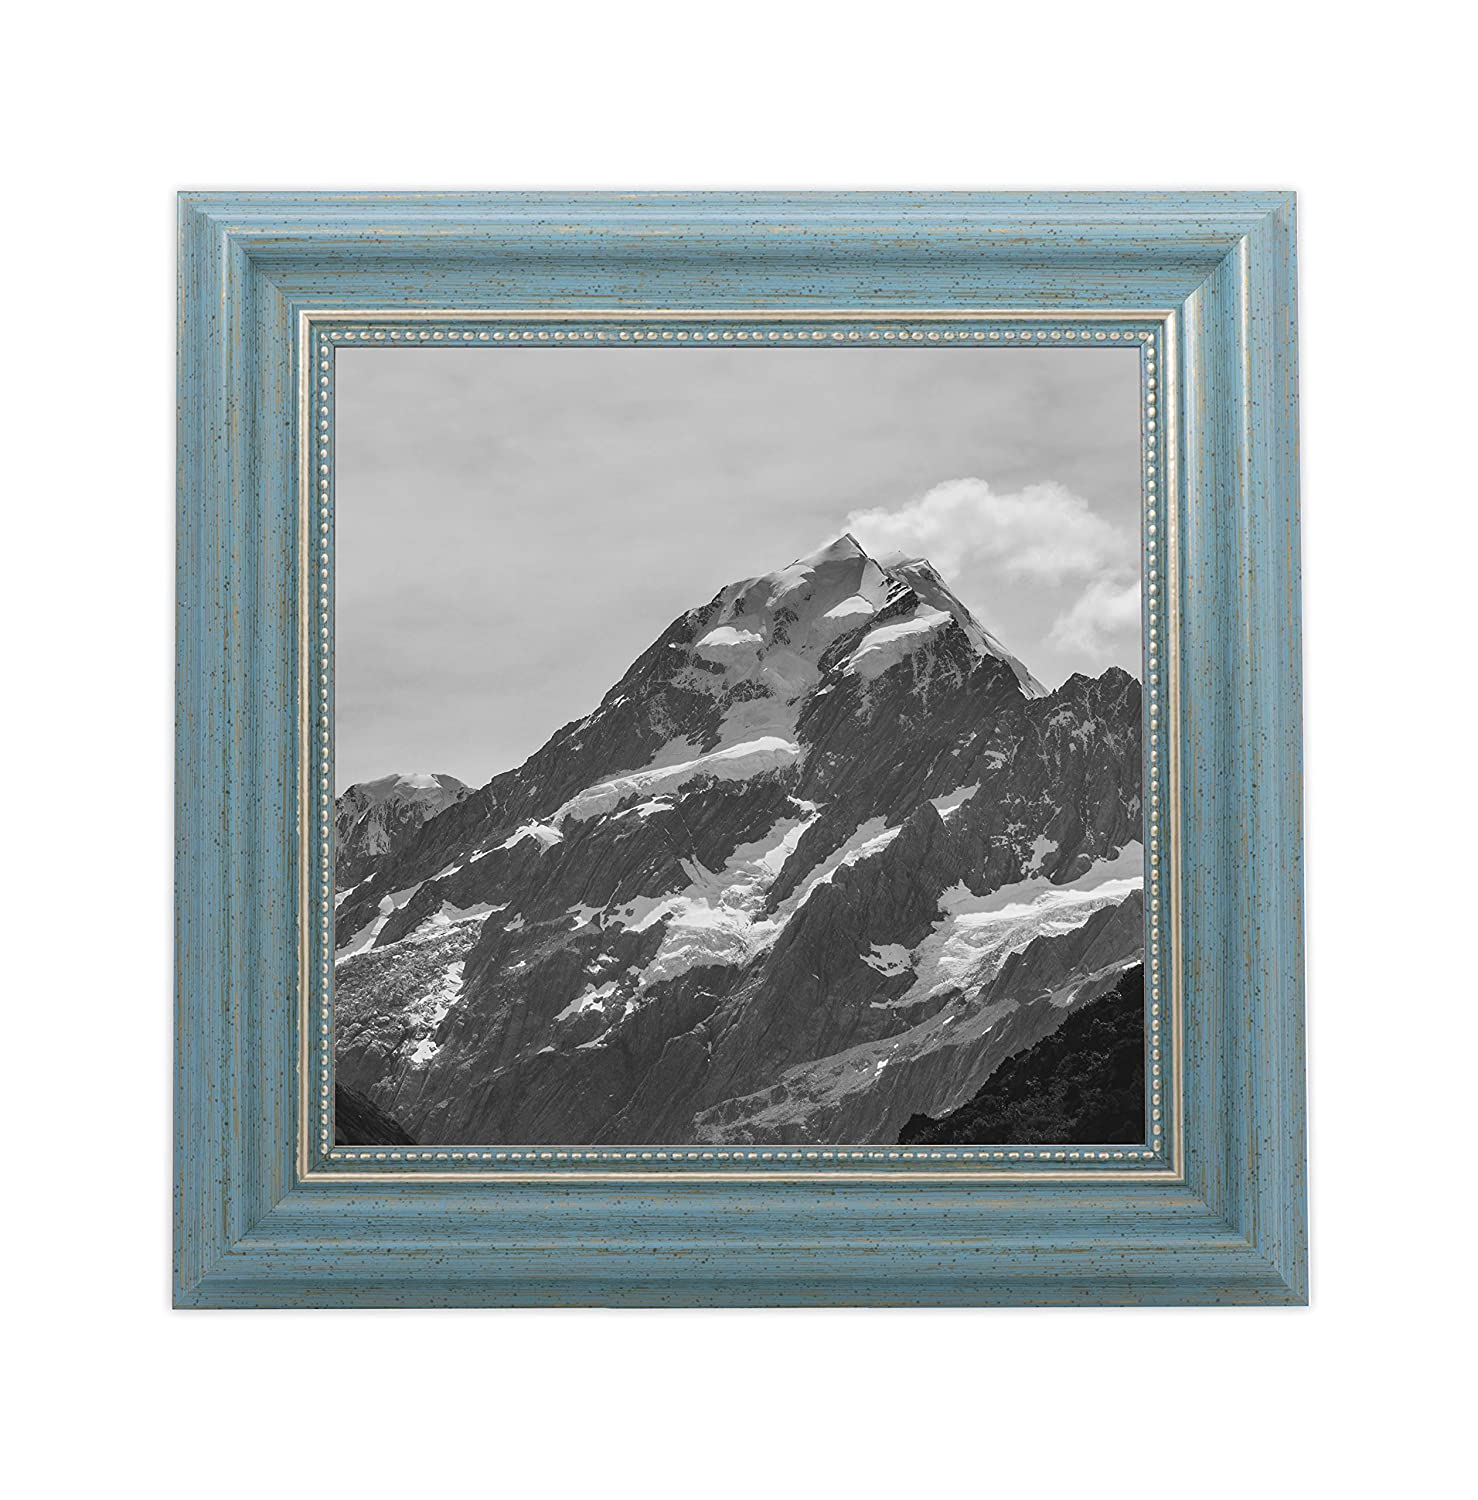 EcoHome 4x4 Picture Frame Square - Tabletop Display or Hang, Classic Brown Wood, Instagram Photos